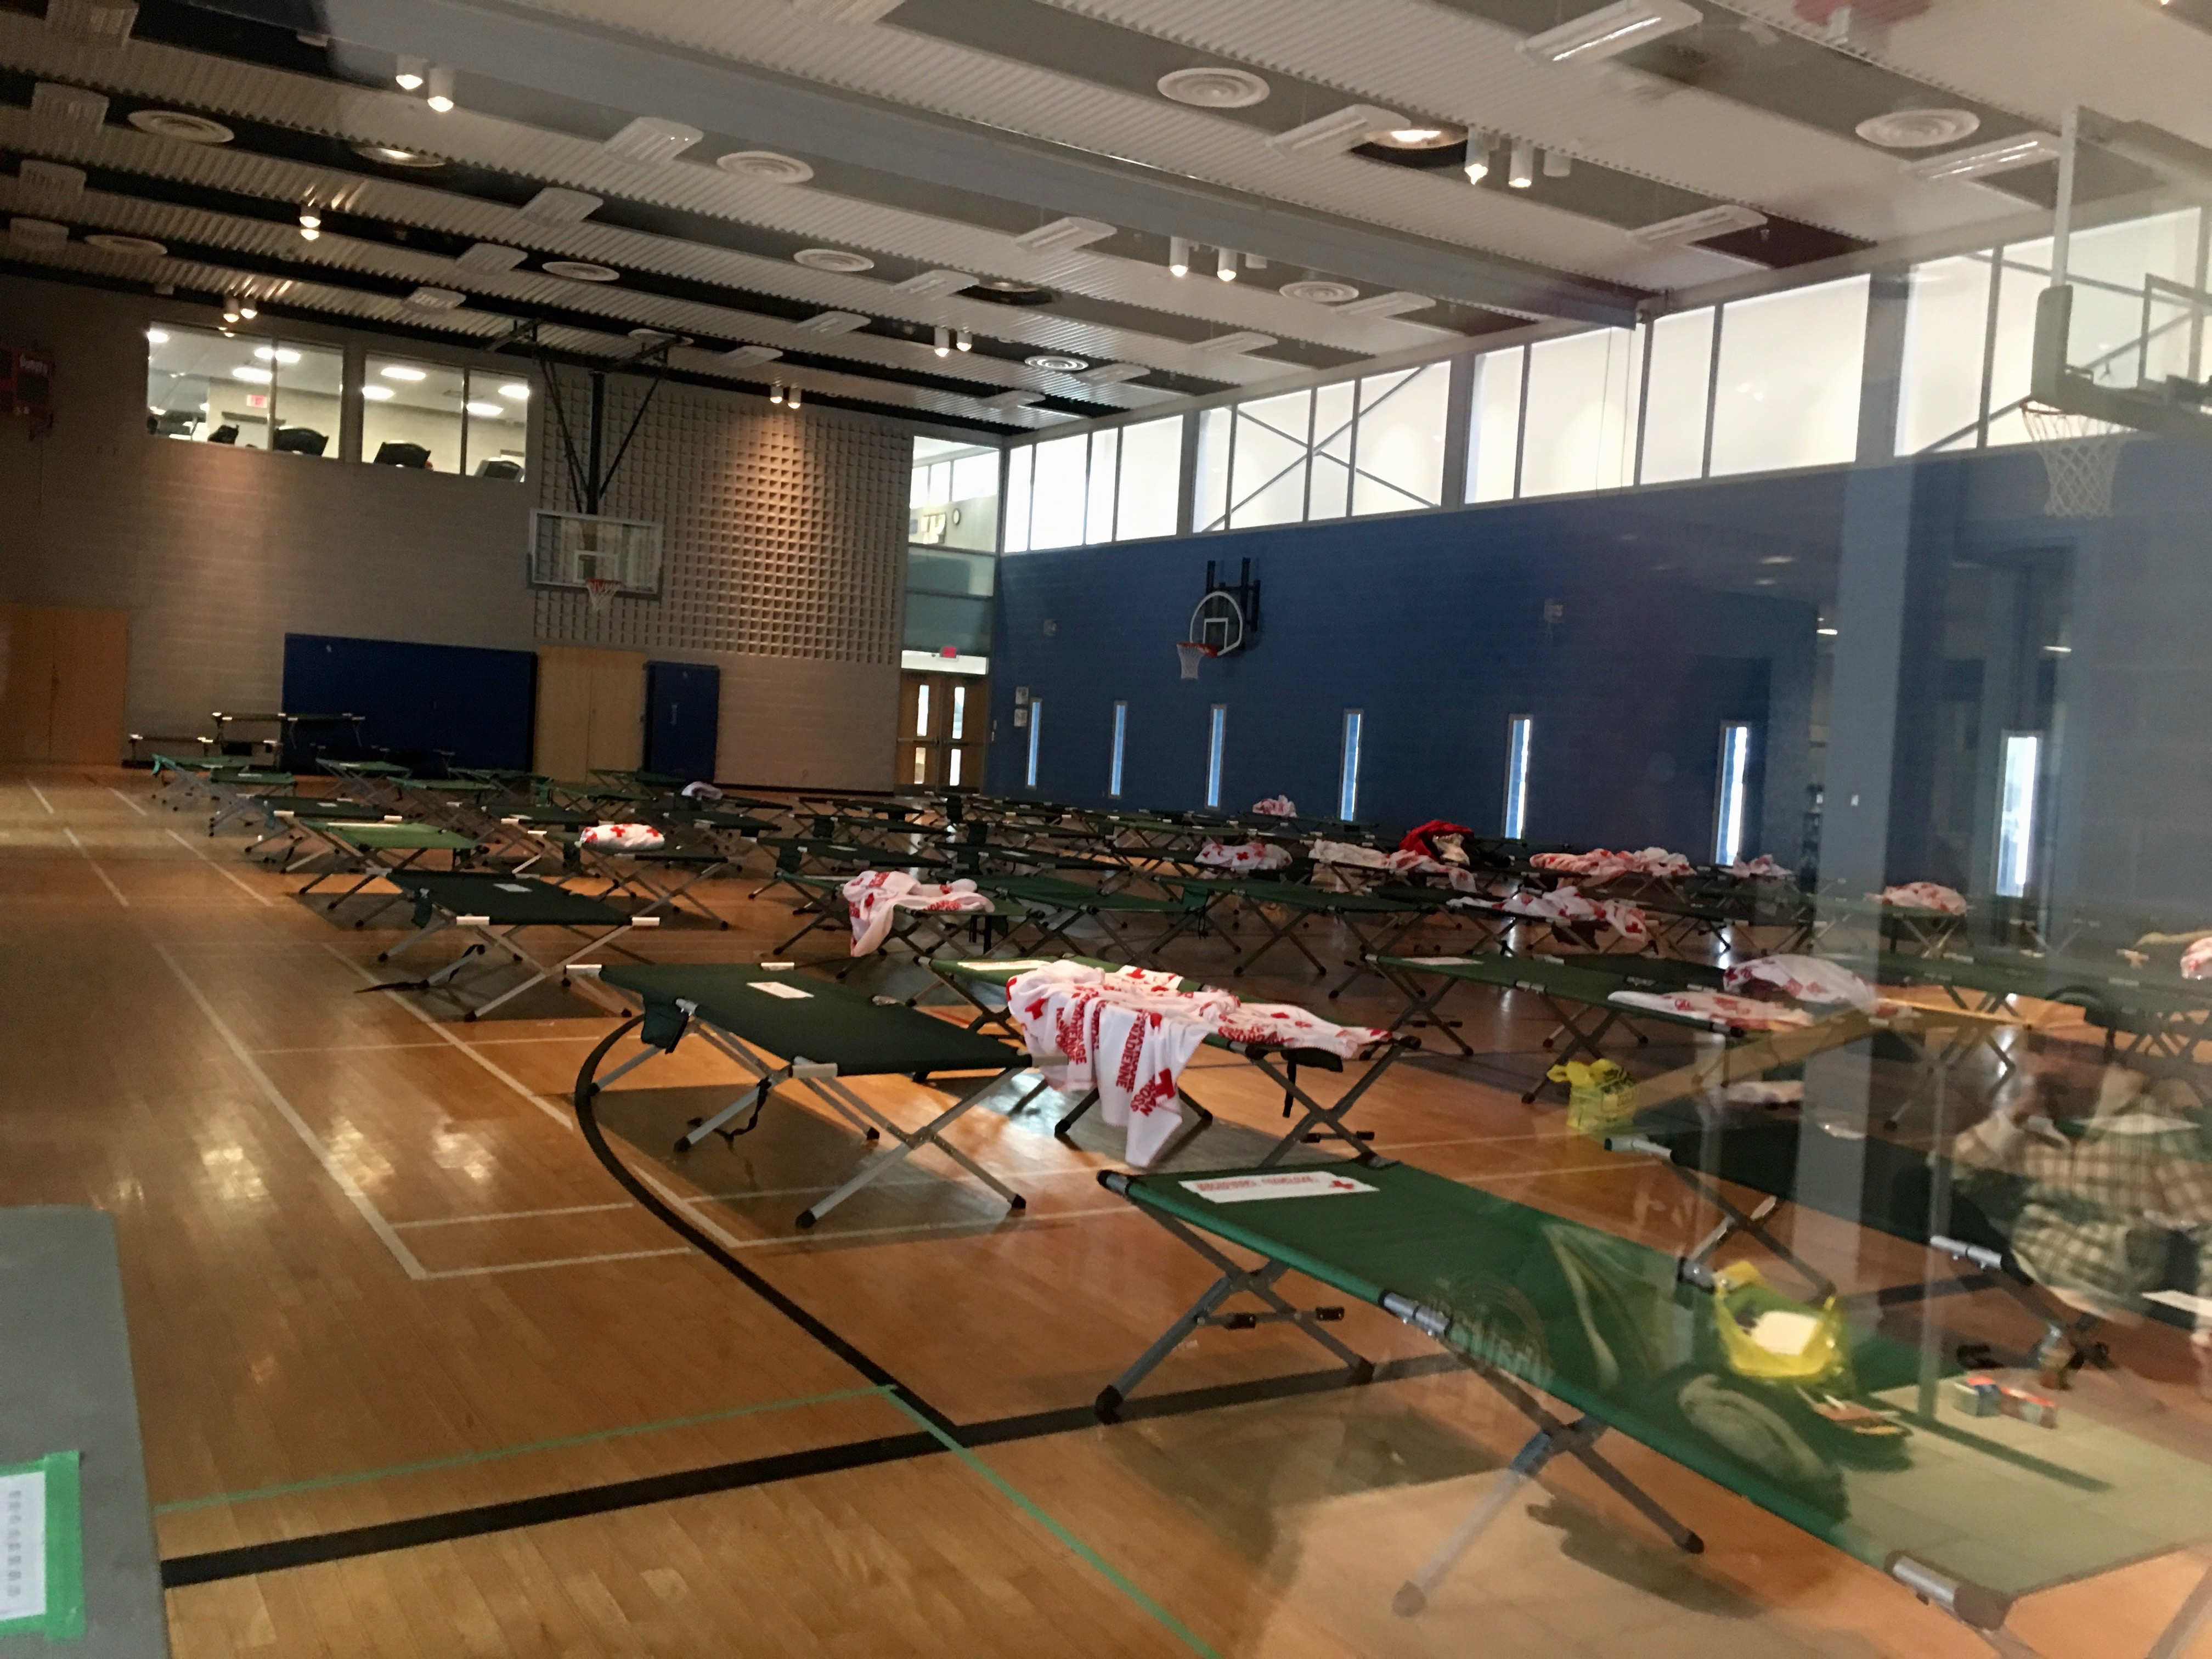 1:30 p.m. Feb. 10, 2017. Emergency cots set up in the gymnasium at Wellesley Community Centre for those displaced by the fire at a Toronto Community Housing building at 291 George St. Approximately 40 men slept on cots at the Wellesley Community Centre. At time of publication, it was not known when the residents of 291 George St. would be able to go home.